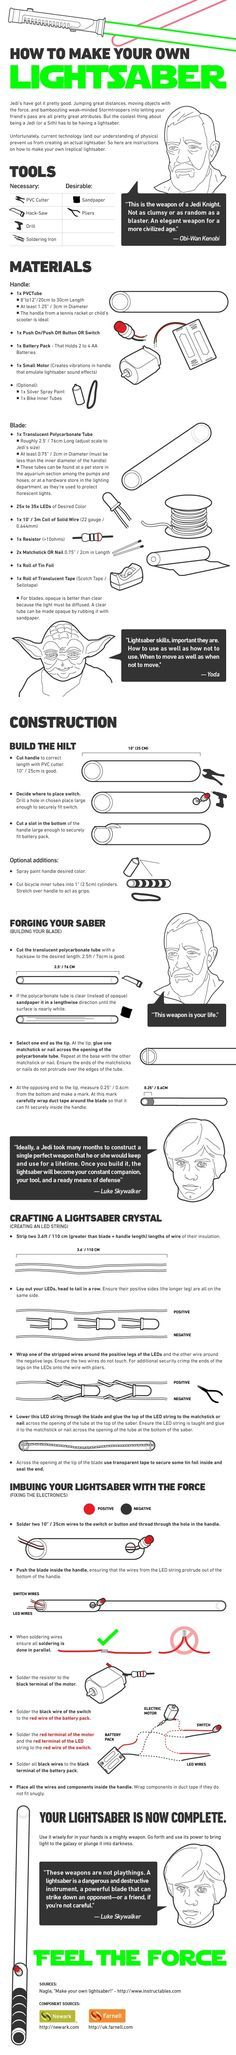 How To Make Your Own DIY Lightsaber #infographic